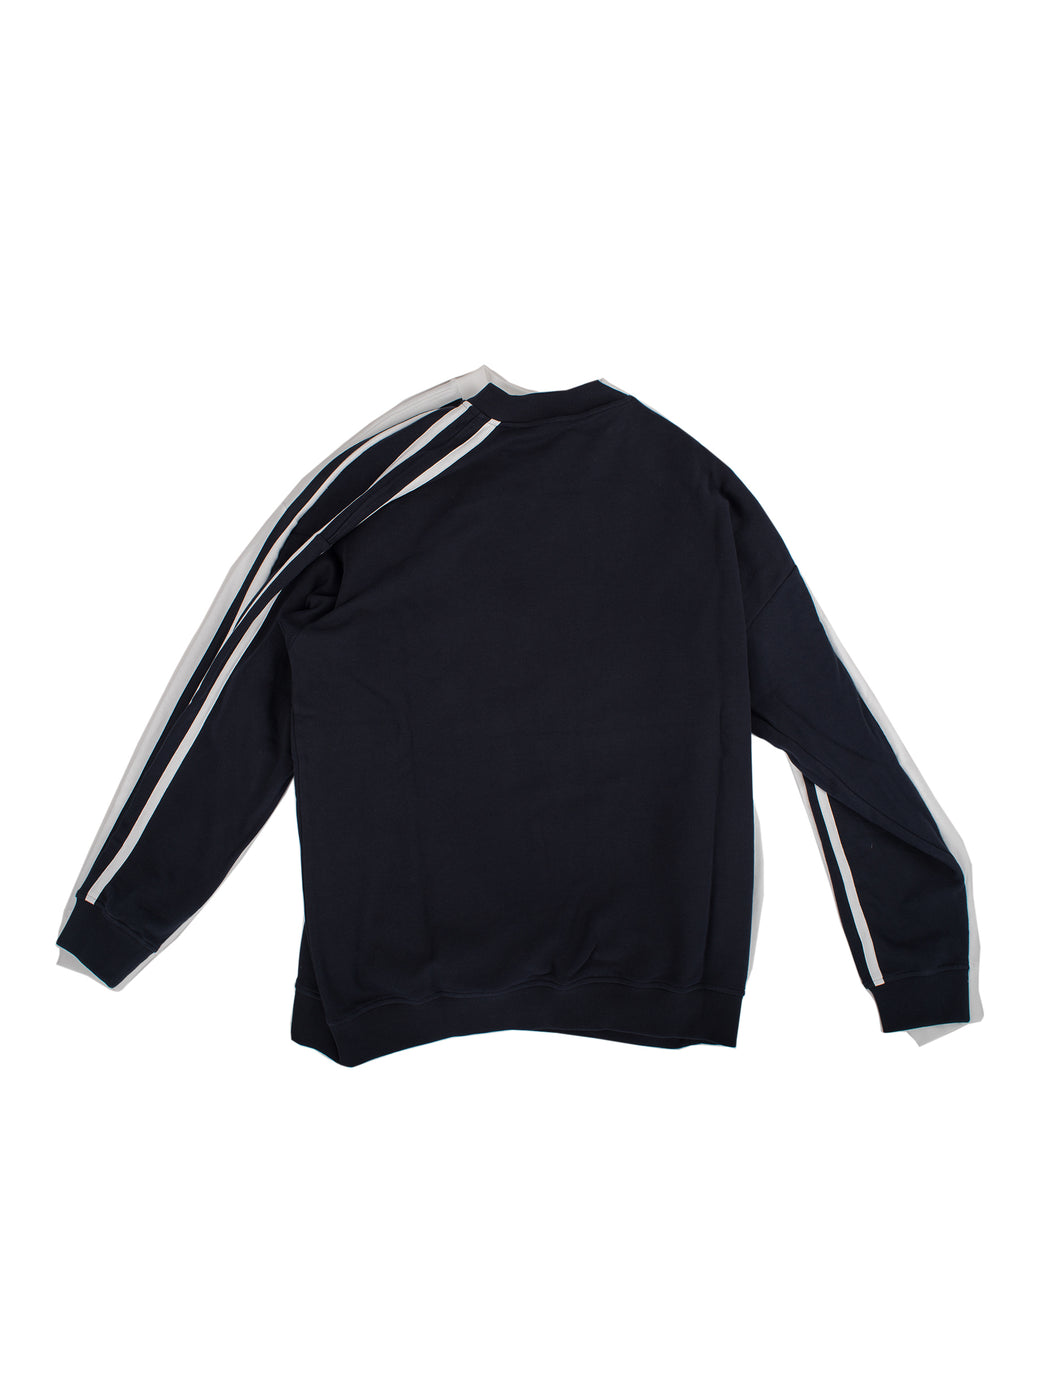 Double Sweater - Navy/White